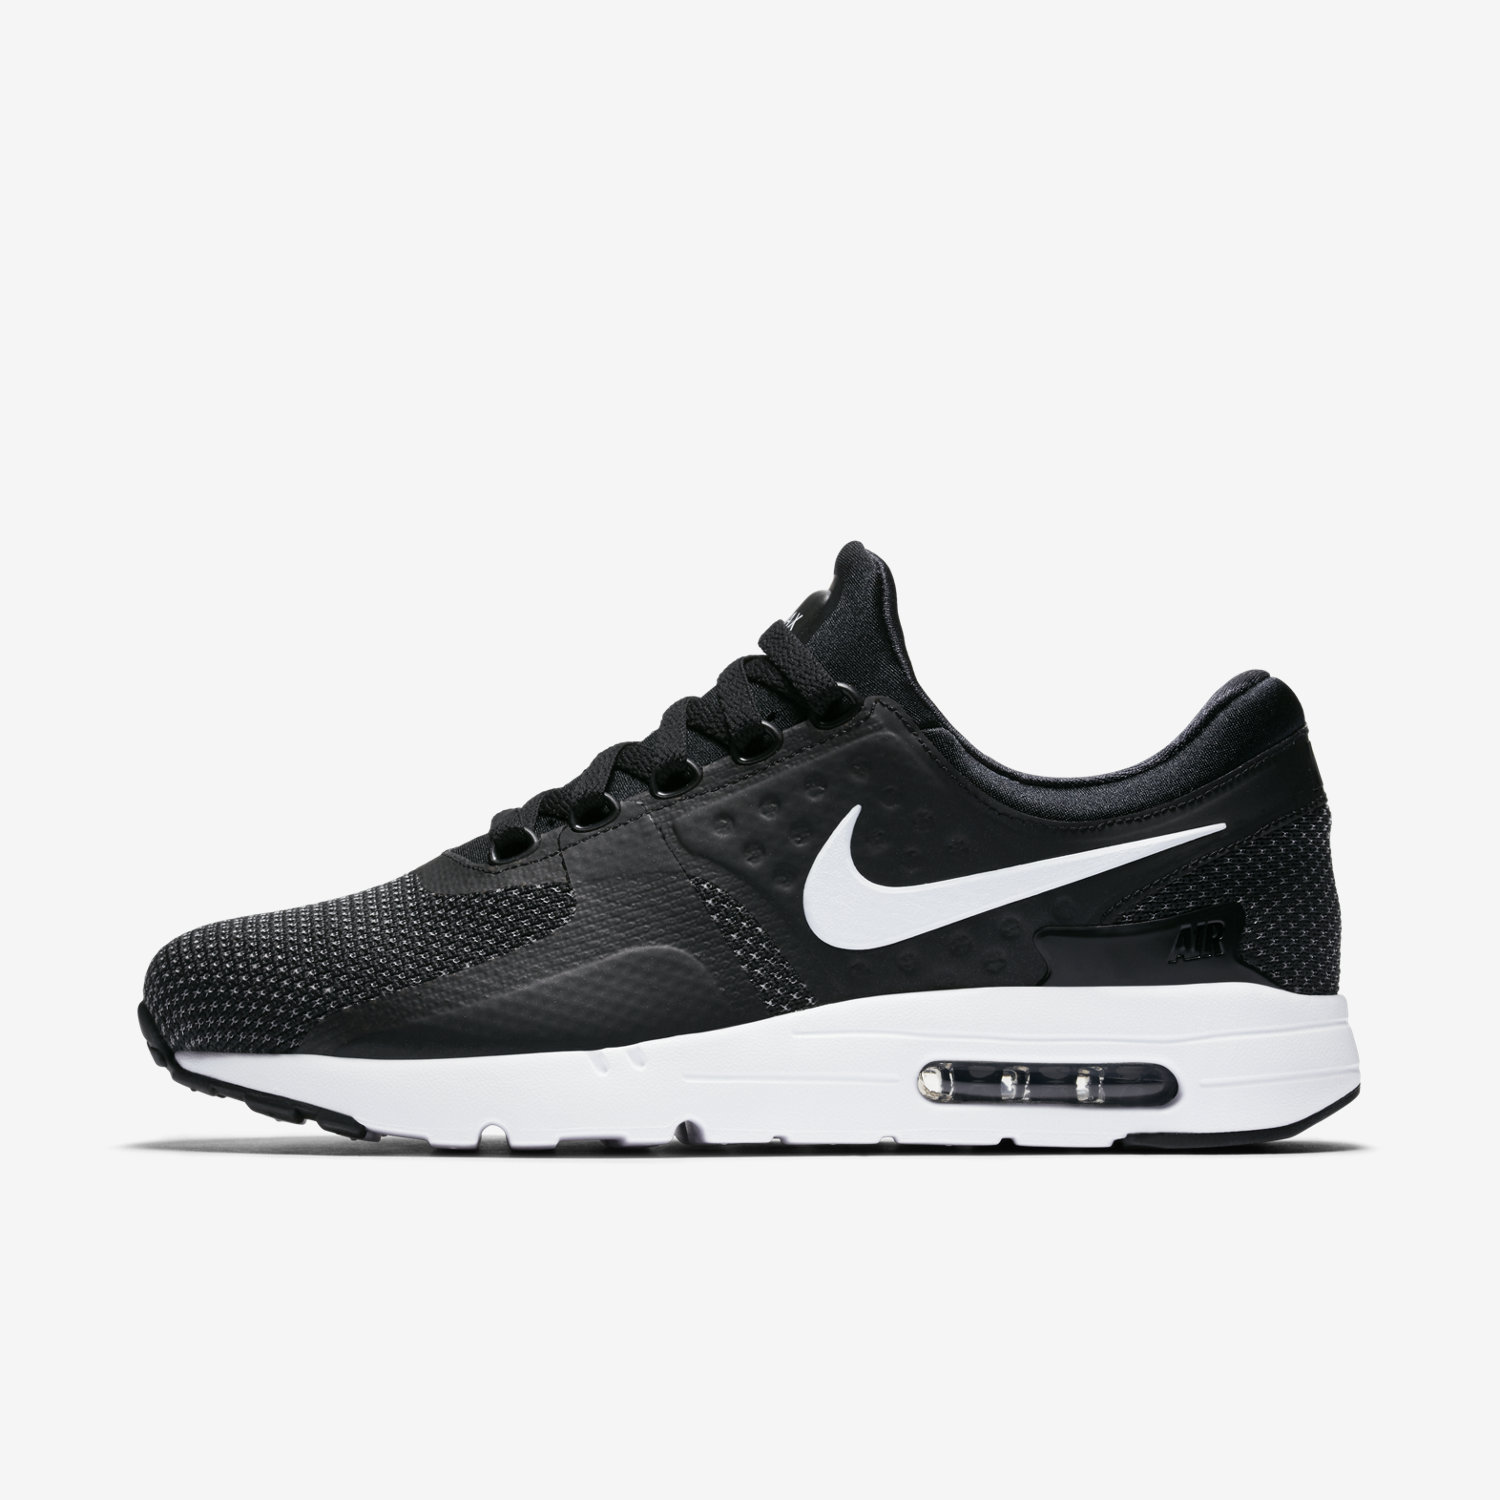 nike air max zero air max zero black traffic school online. Black Bedroom Furniture Sets. Home Design Ideas